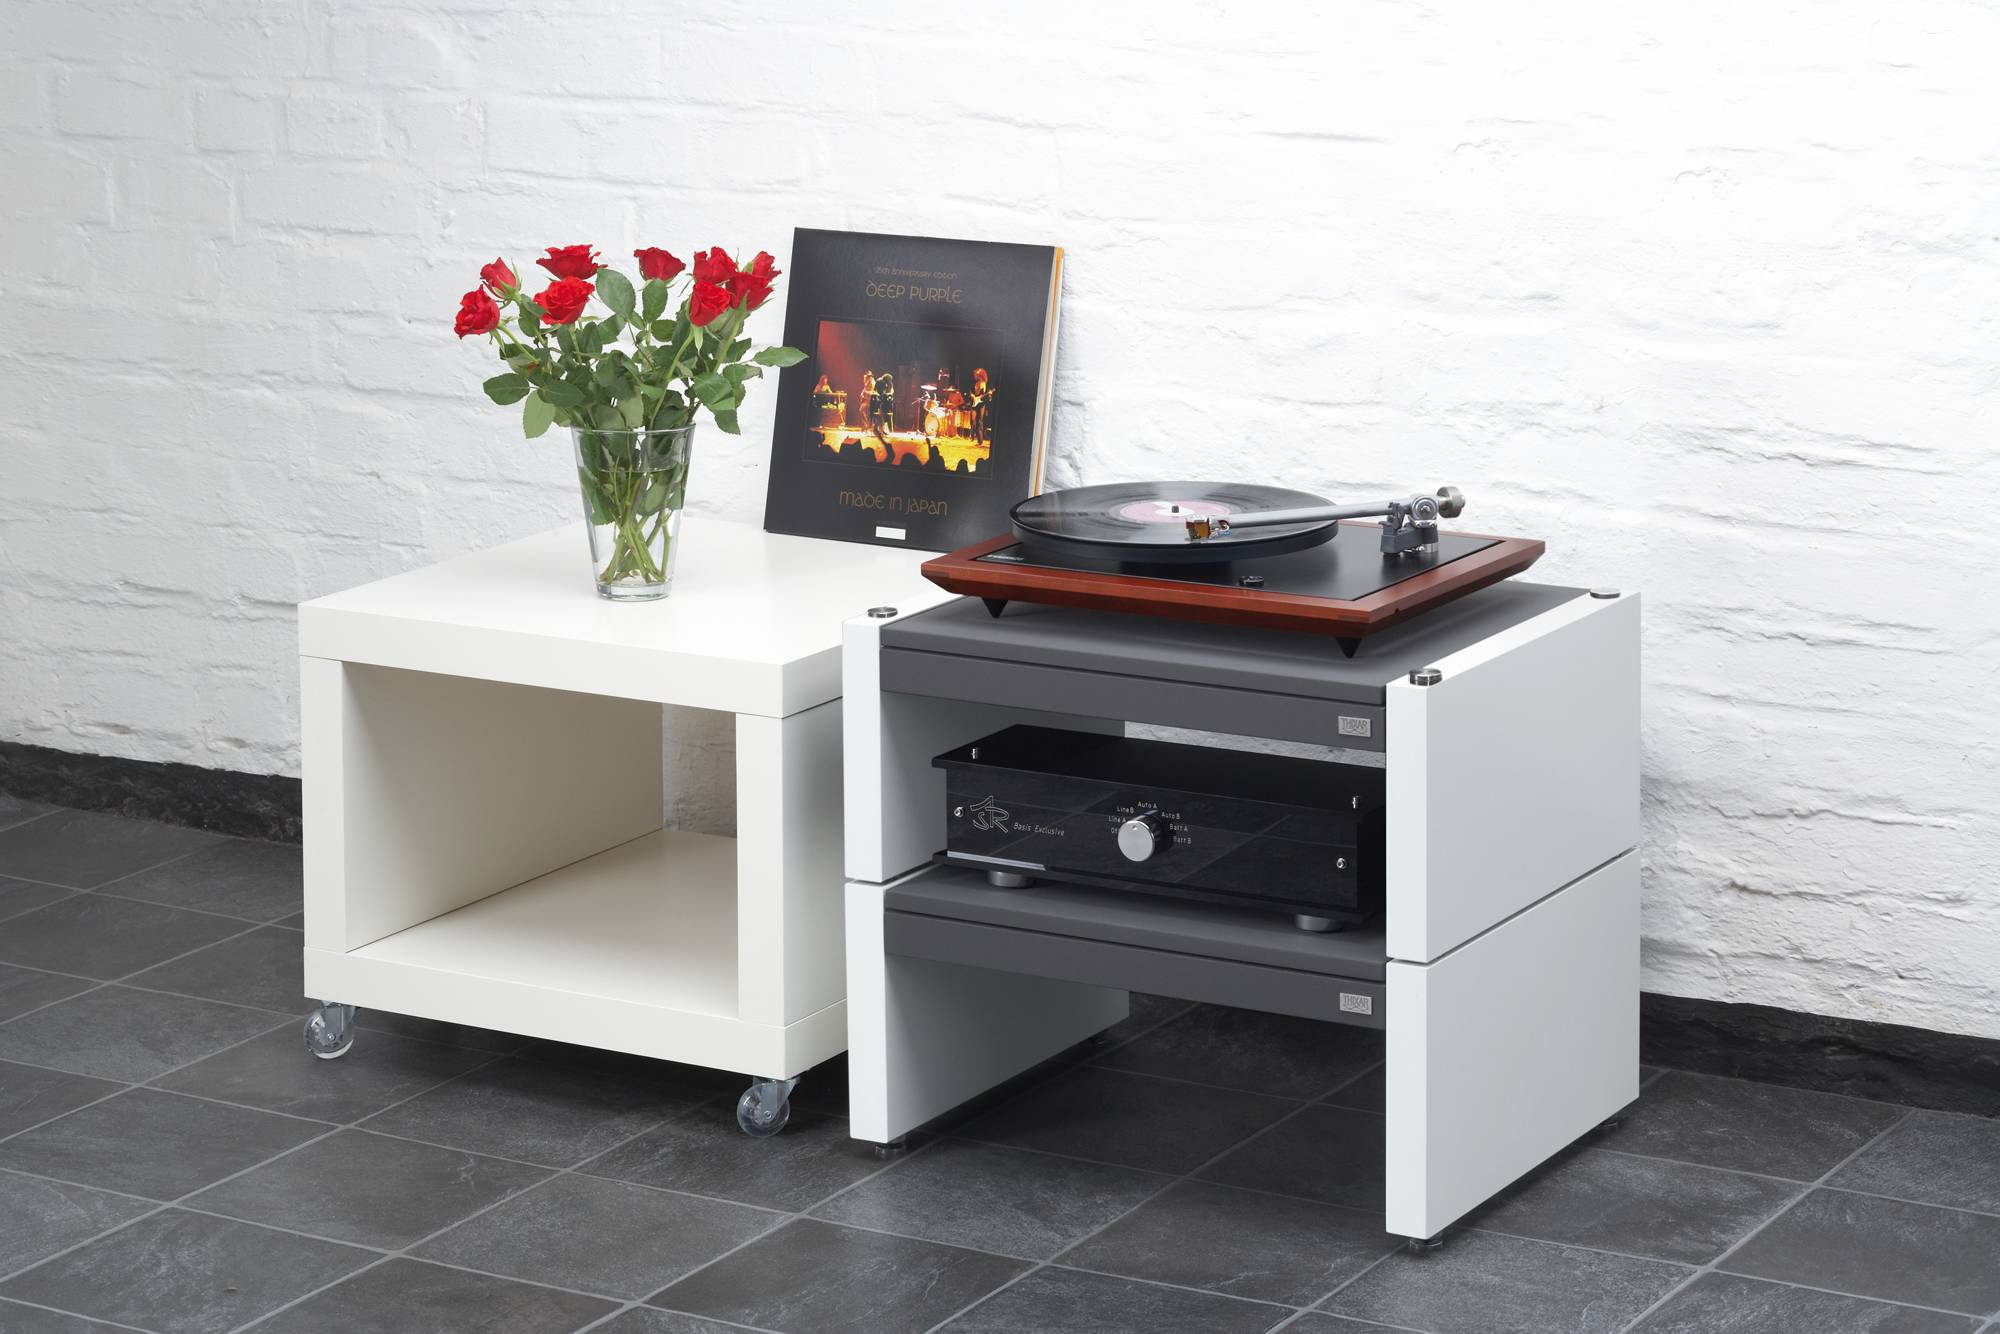 Hifi Rack Design Smd Ultimate Audiophile Hifi Rack Thixar